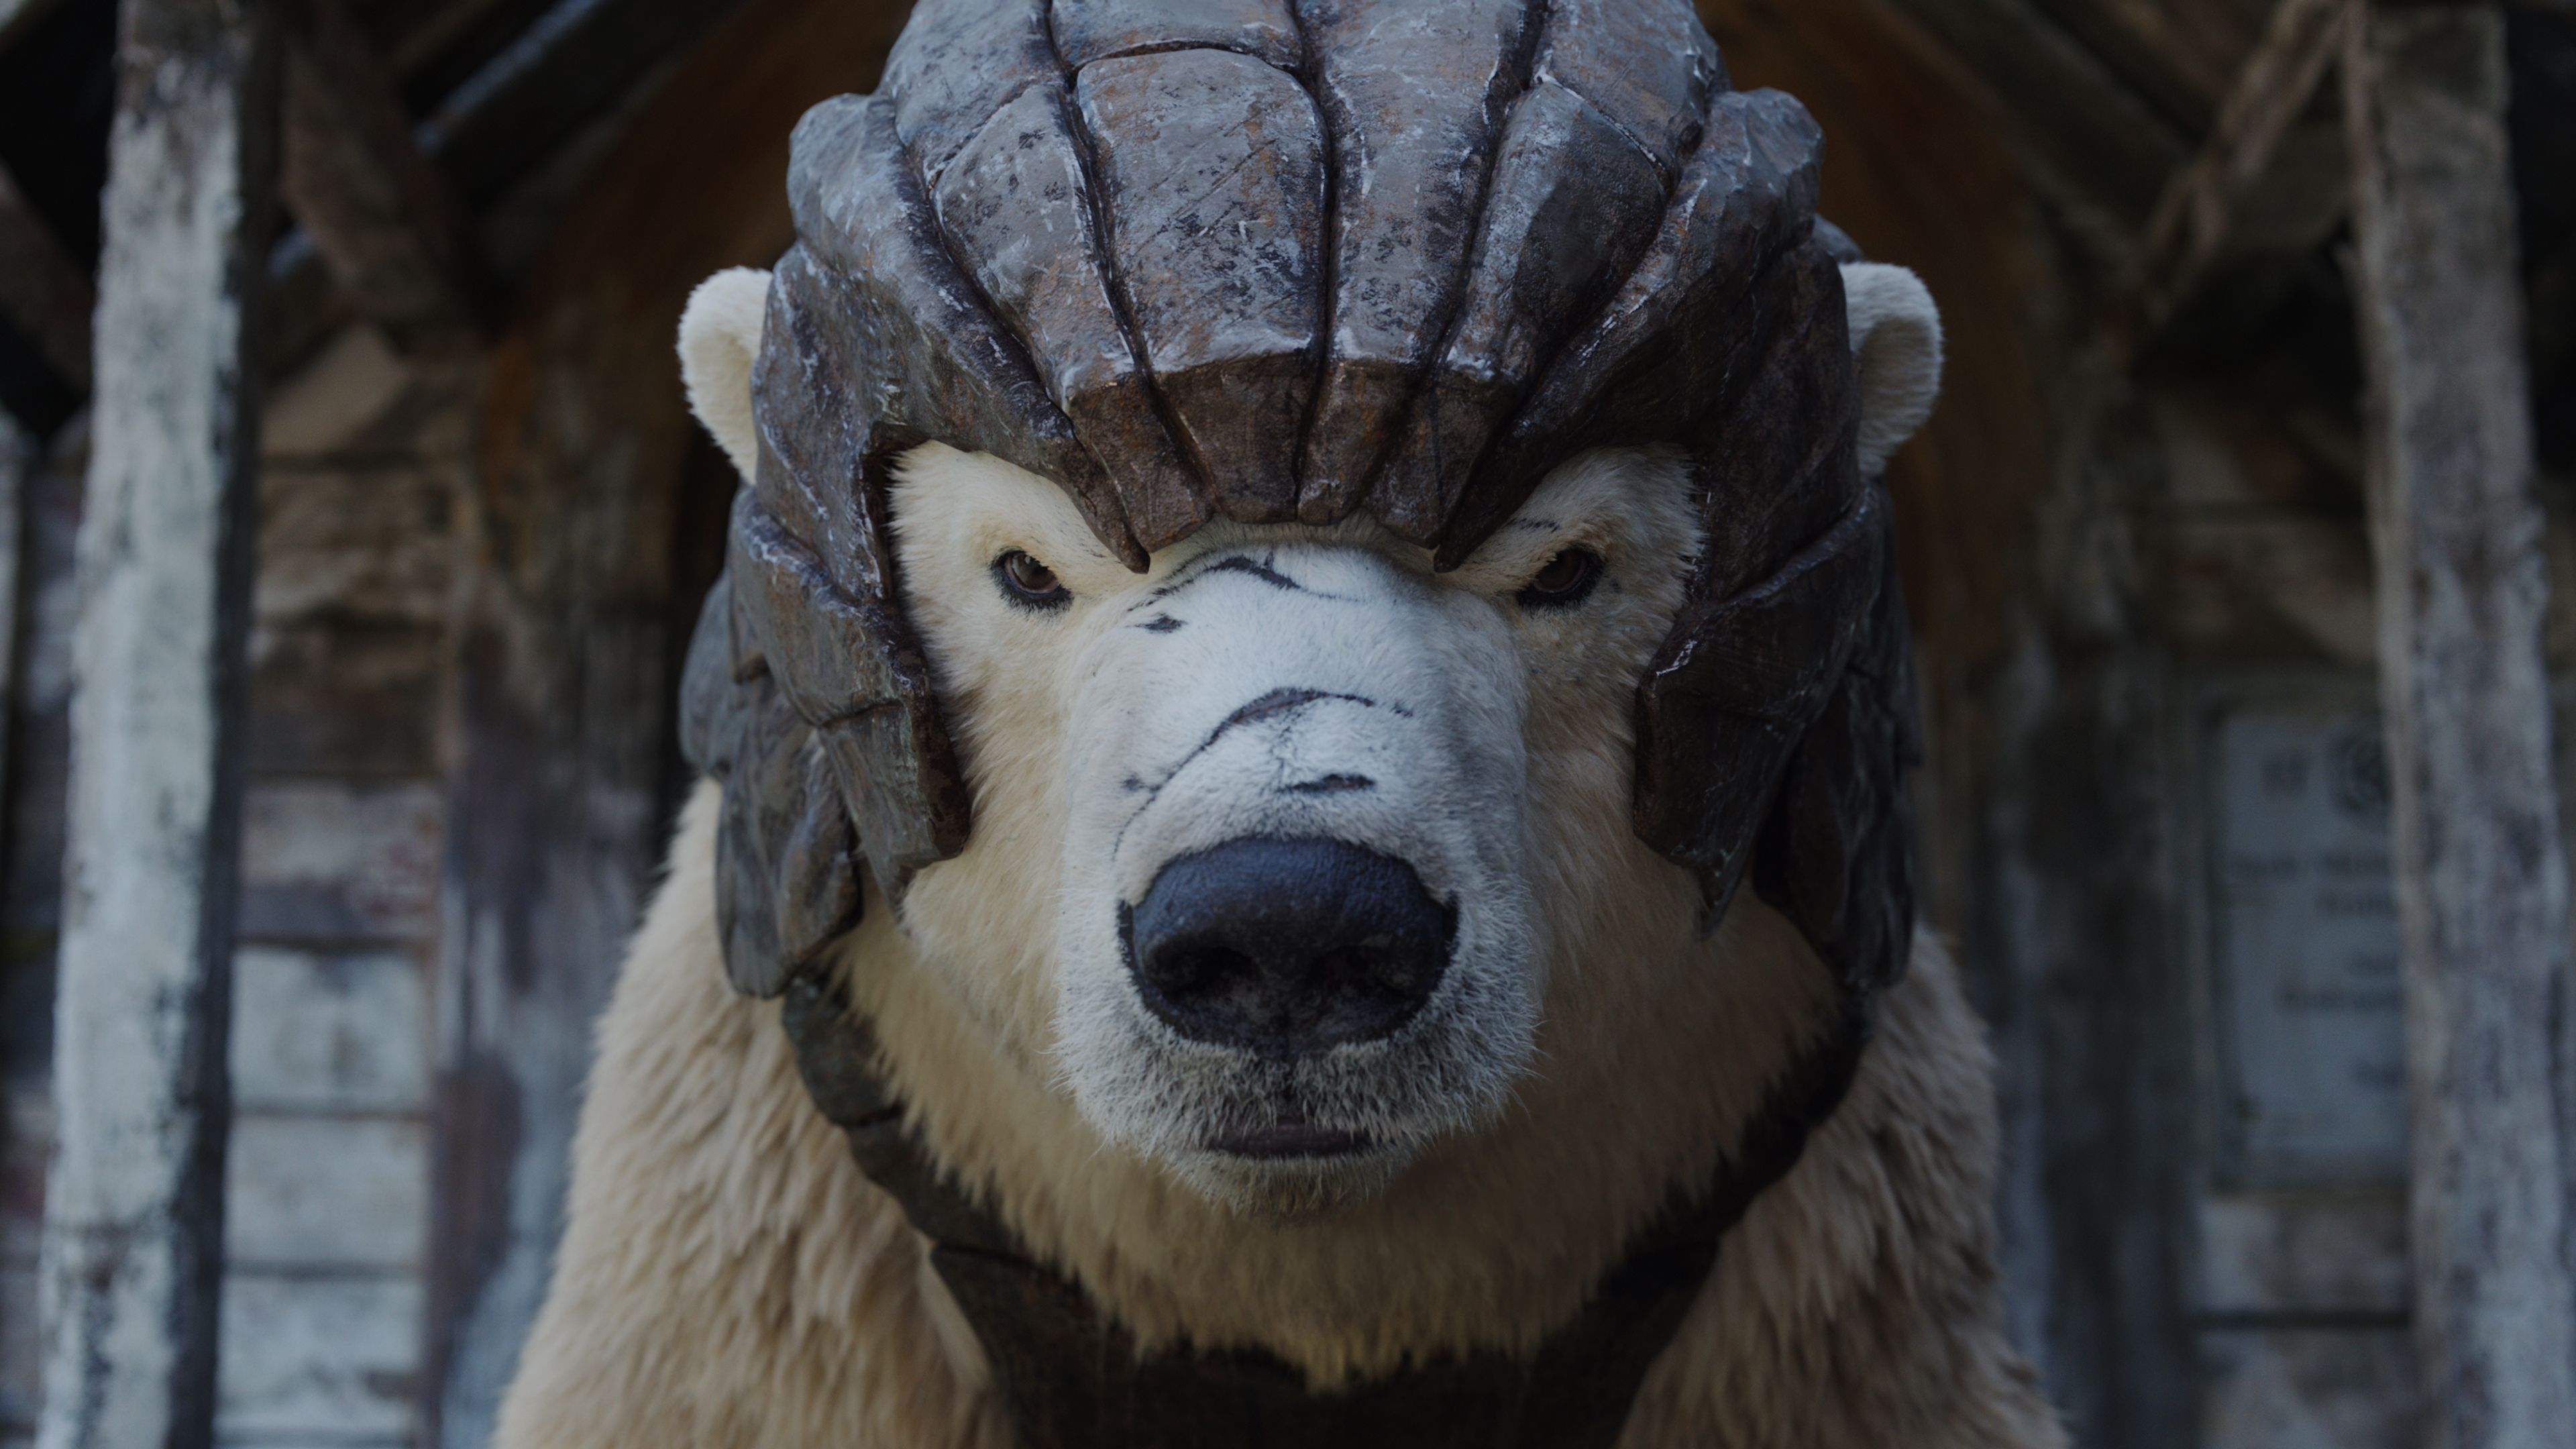 HBO is making an adaptation of 'His Dark Materials' too!